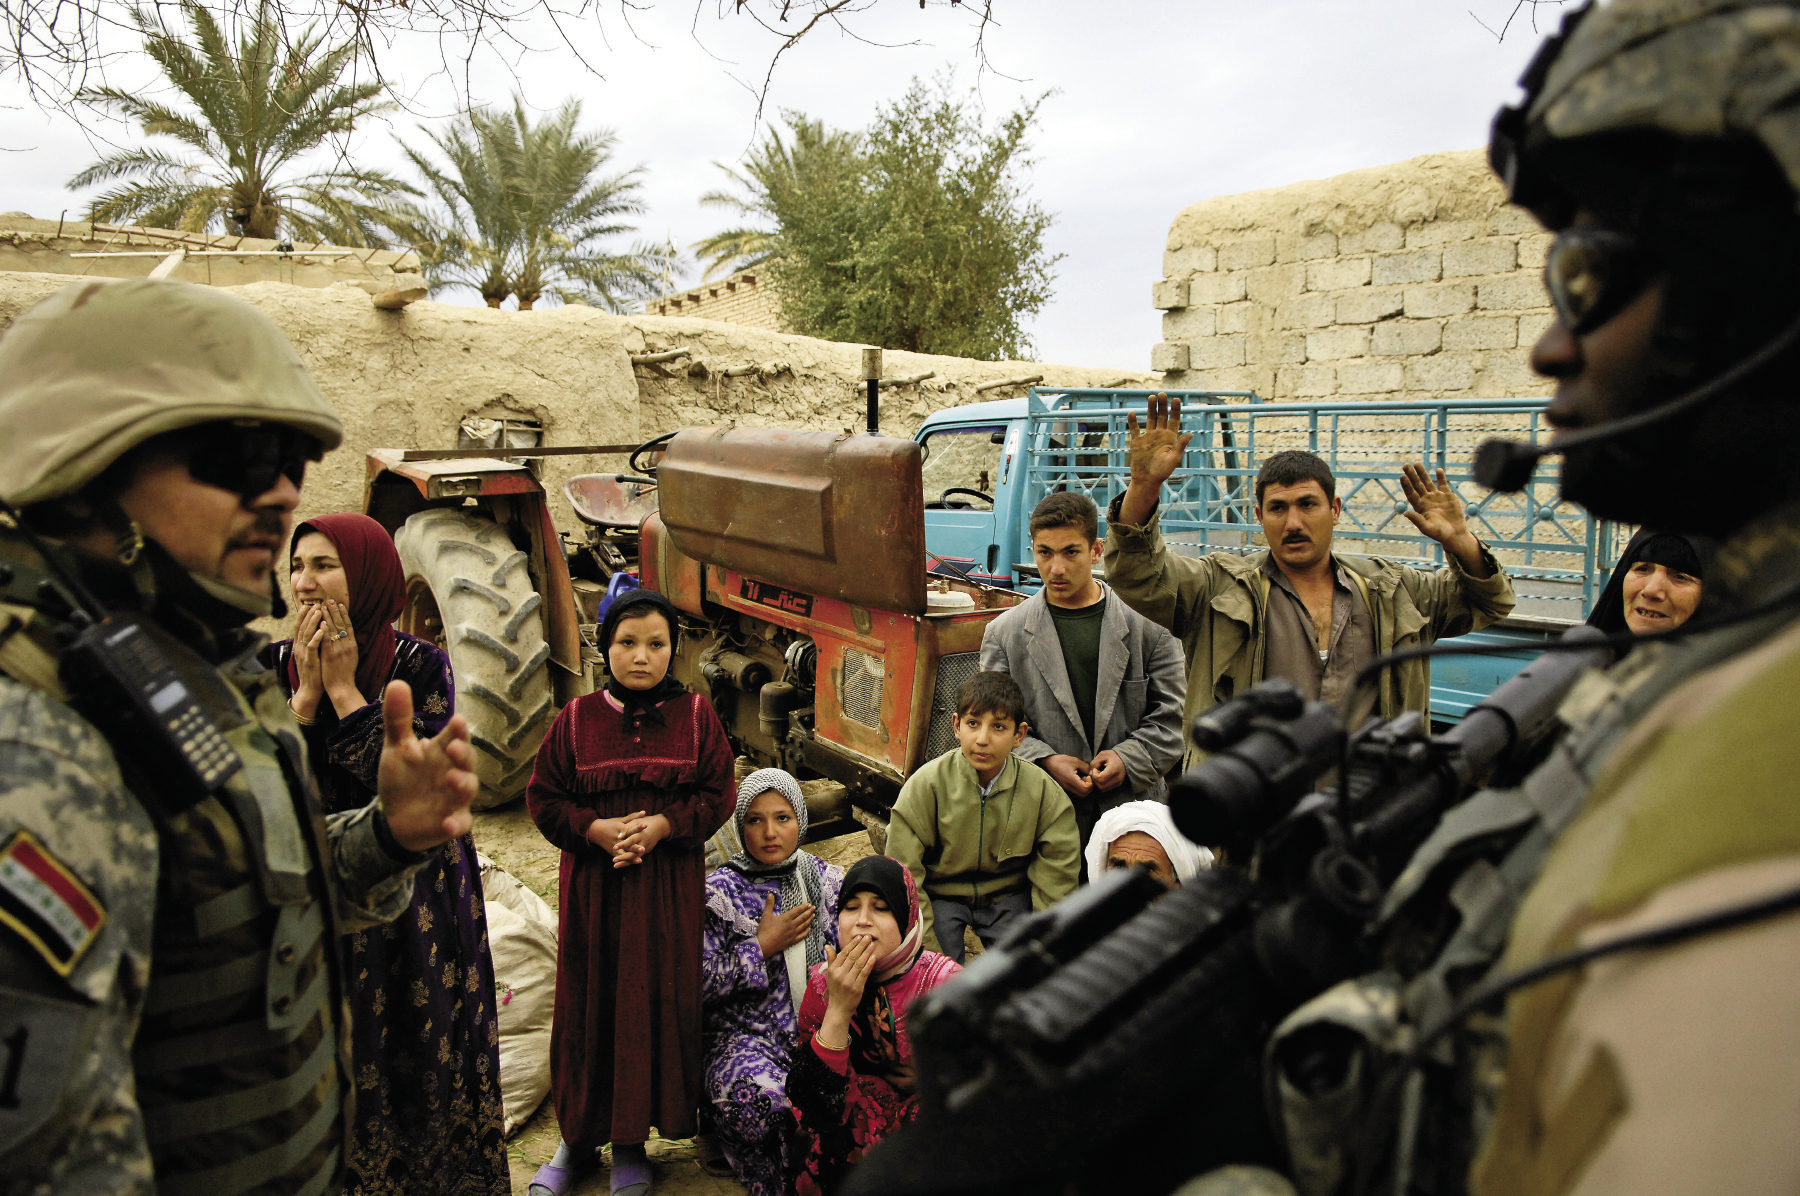 February 10, 2007: While searching for al-Qaeda and Ansar al-Sunna forces during Operation Orange Justice in Buhriz, Iraq, members of the Multi-Iraqi Transitional Team, 4th Battalion, 2nd Brigade, 5th Division question the locals.